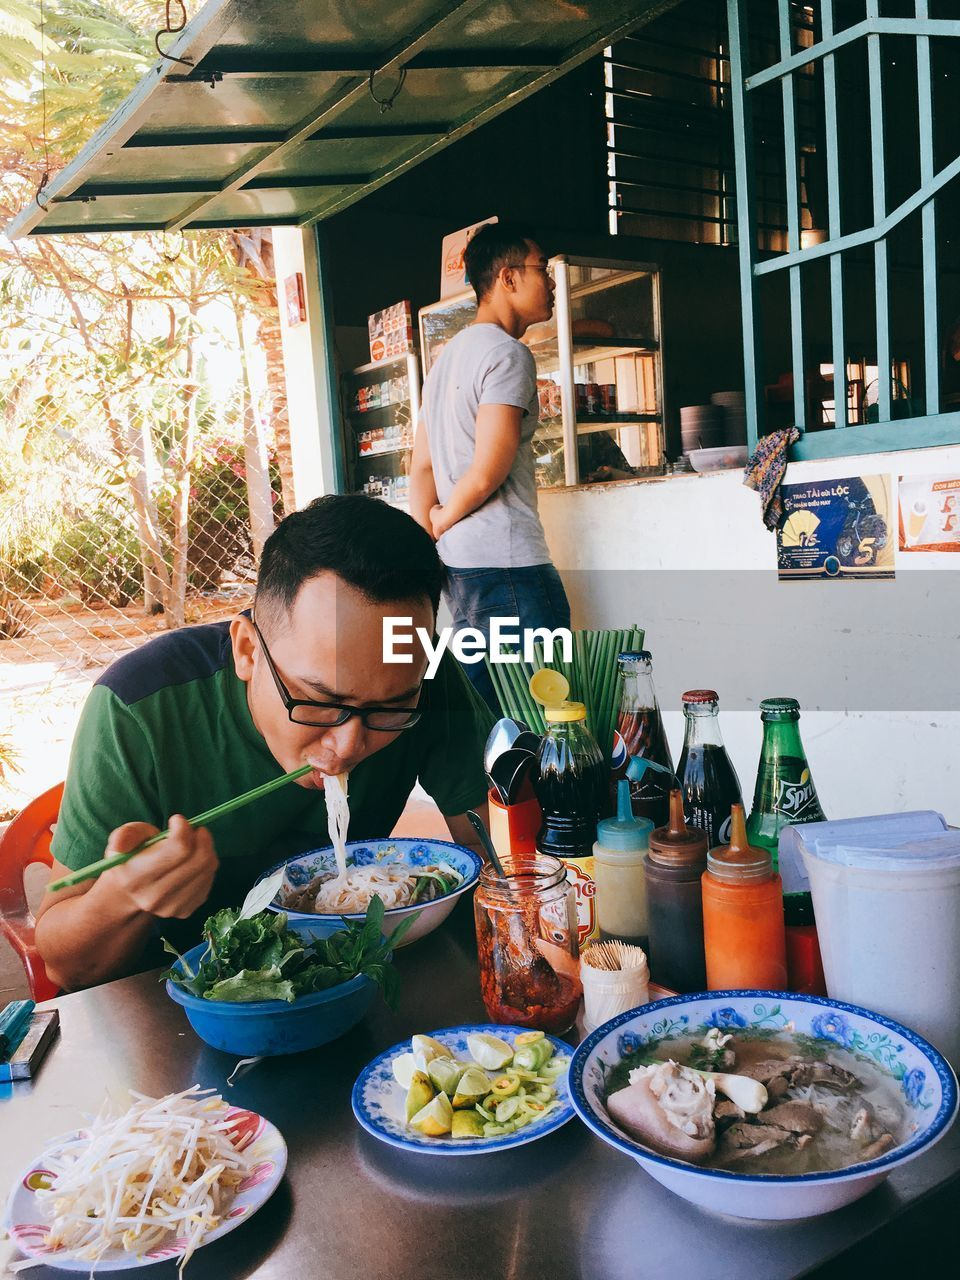 two people, food, table, food and drink, bowl, real people, plate, sitting, indoors, men, day, freshness, ready-to-eat, people